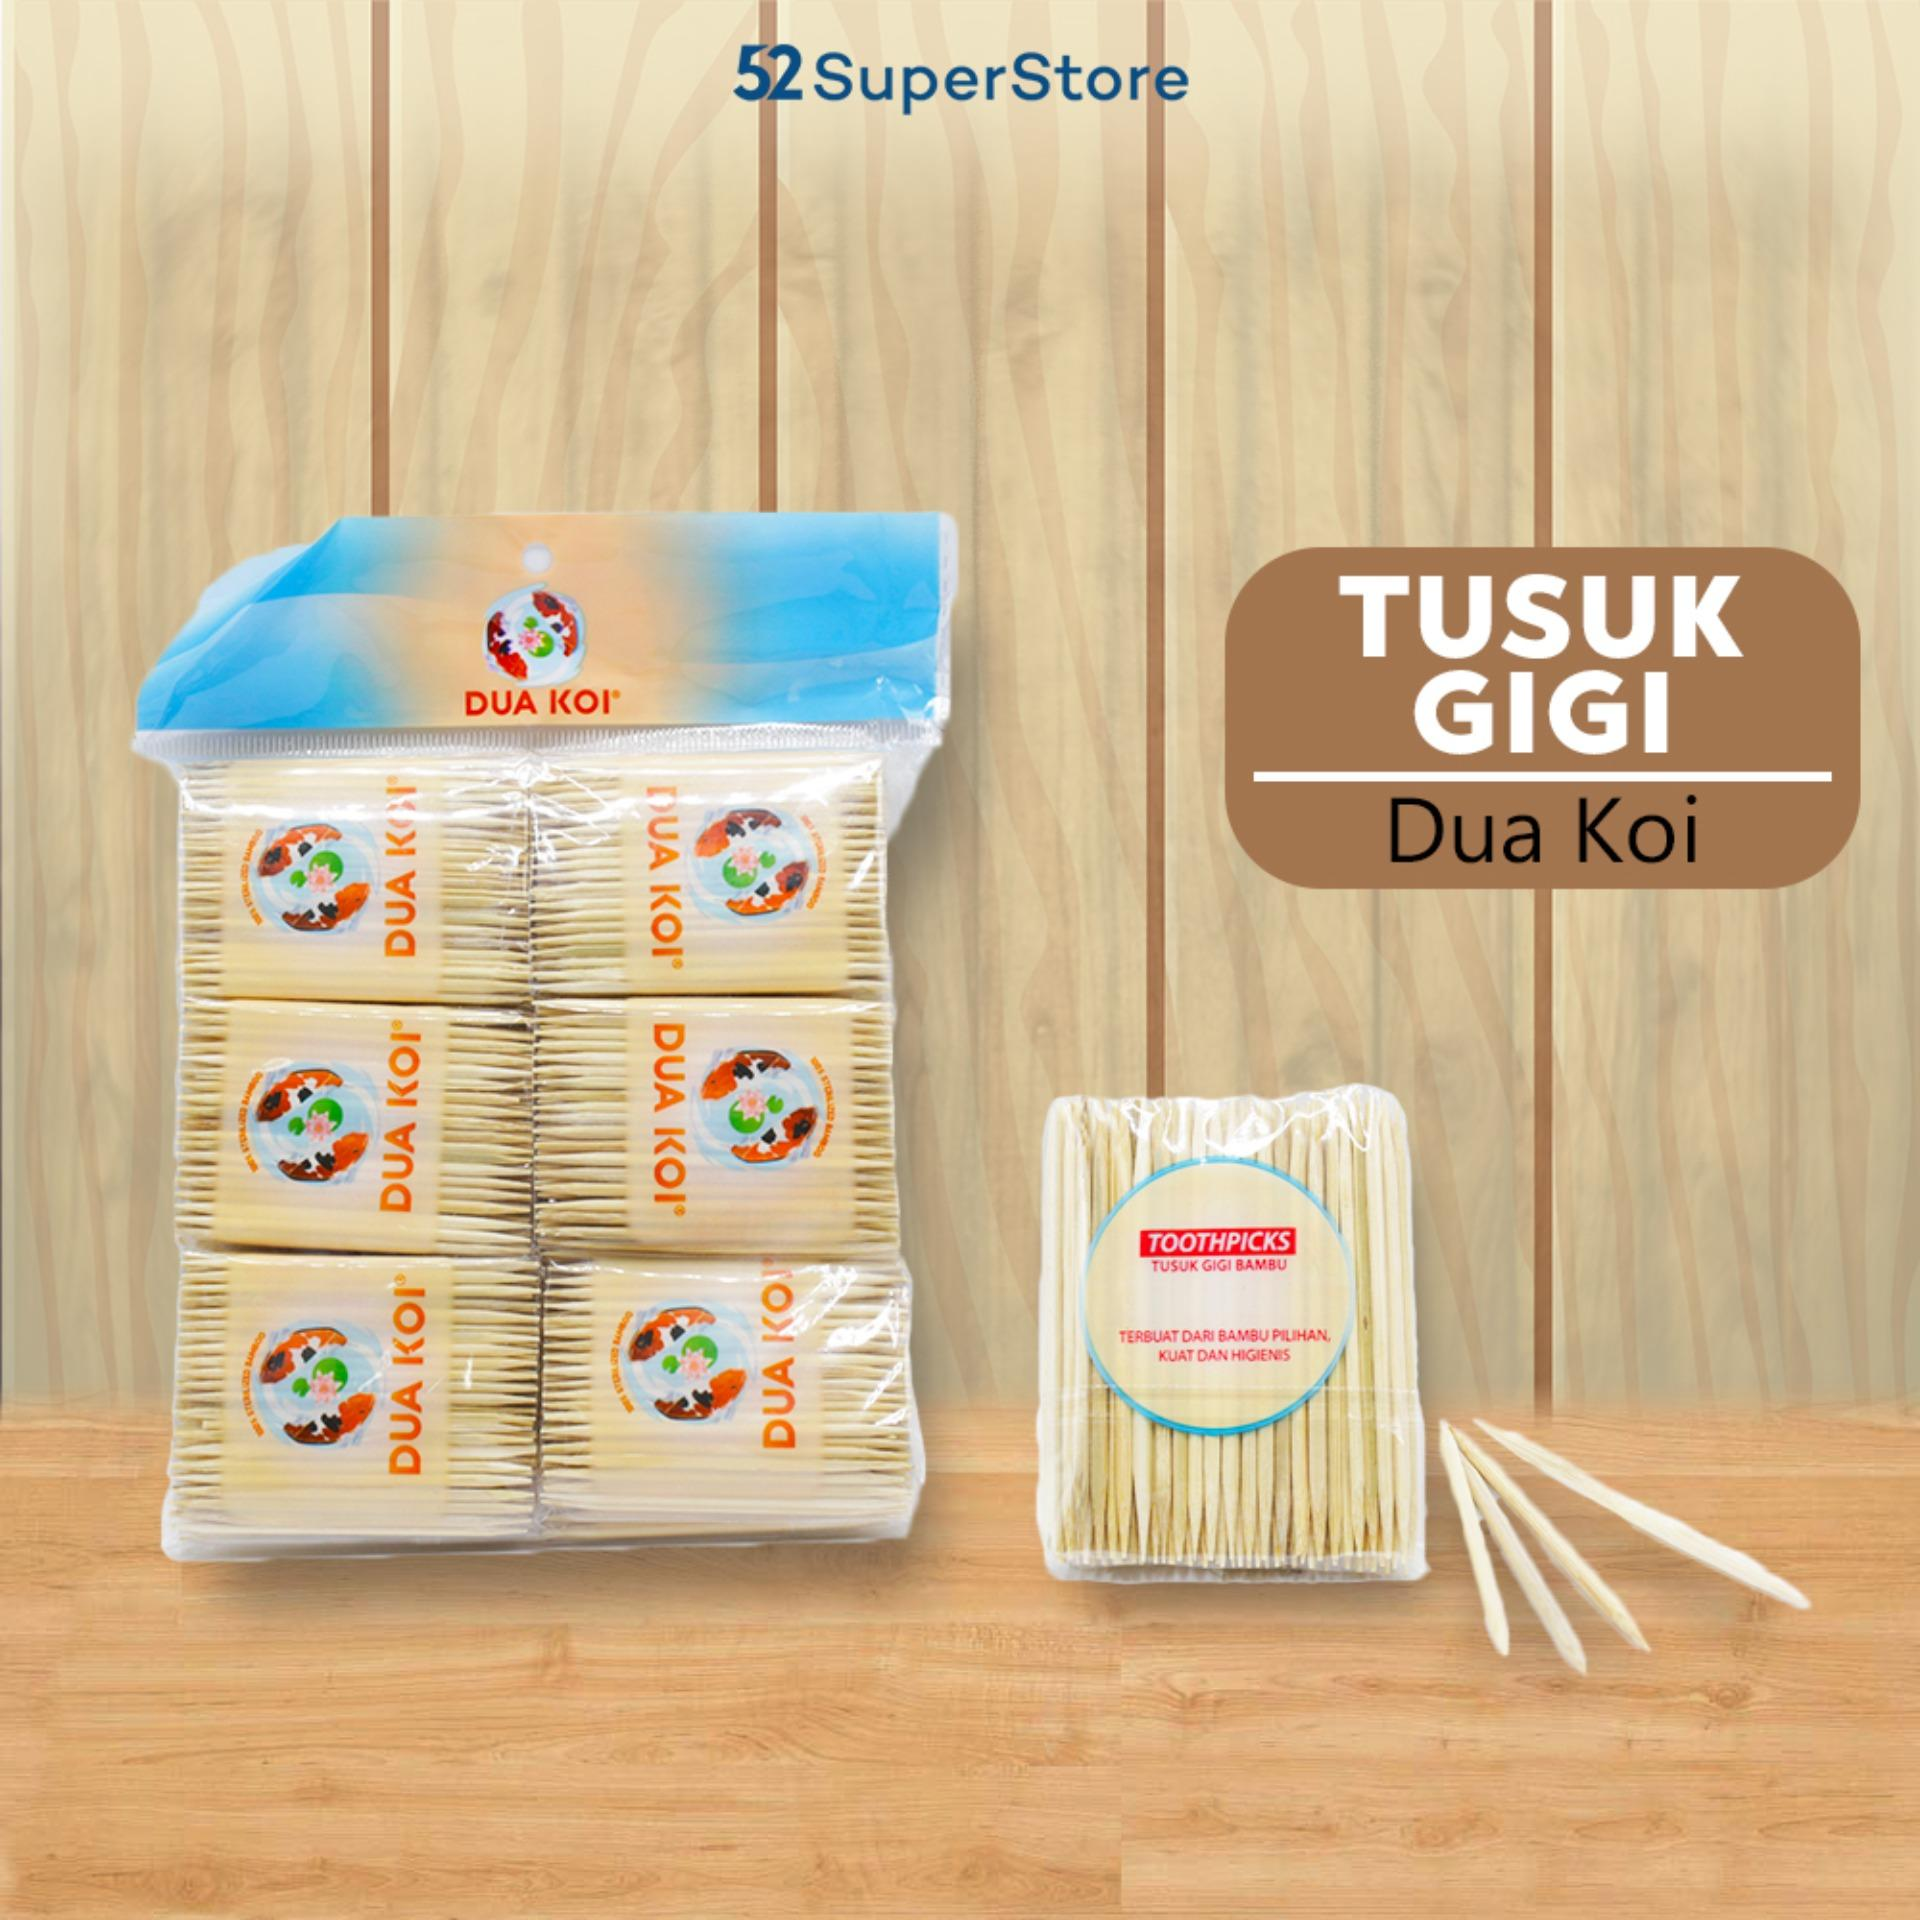 Buy Sell Cheapest 1 Pack Gigi Best Quality Product Deals Tusuk Aman 52 Home Bambu Dua Koi Isi Lusin 12